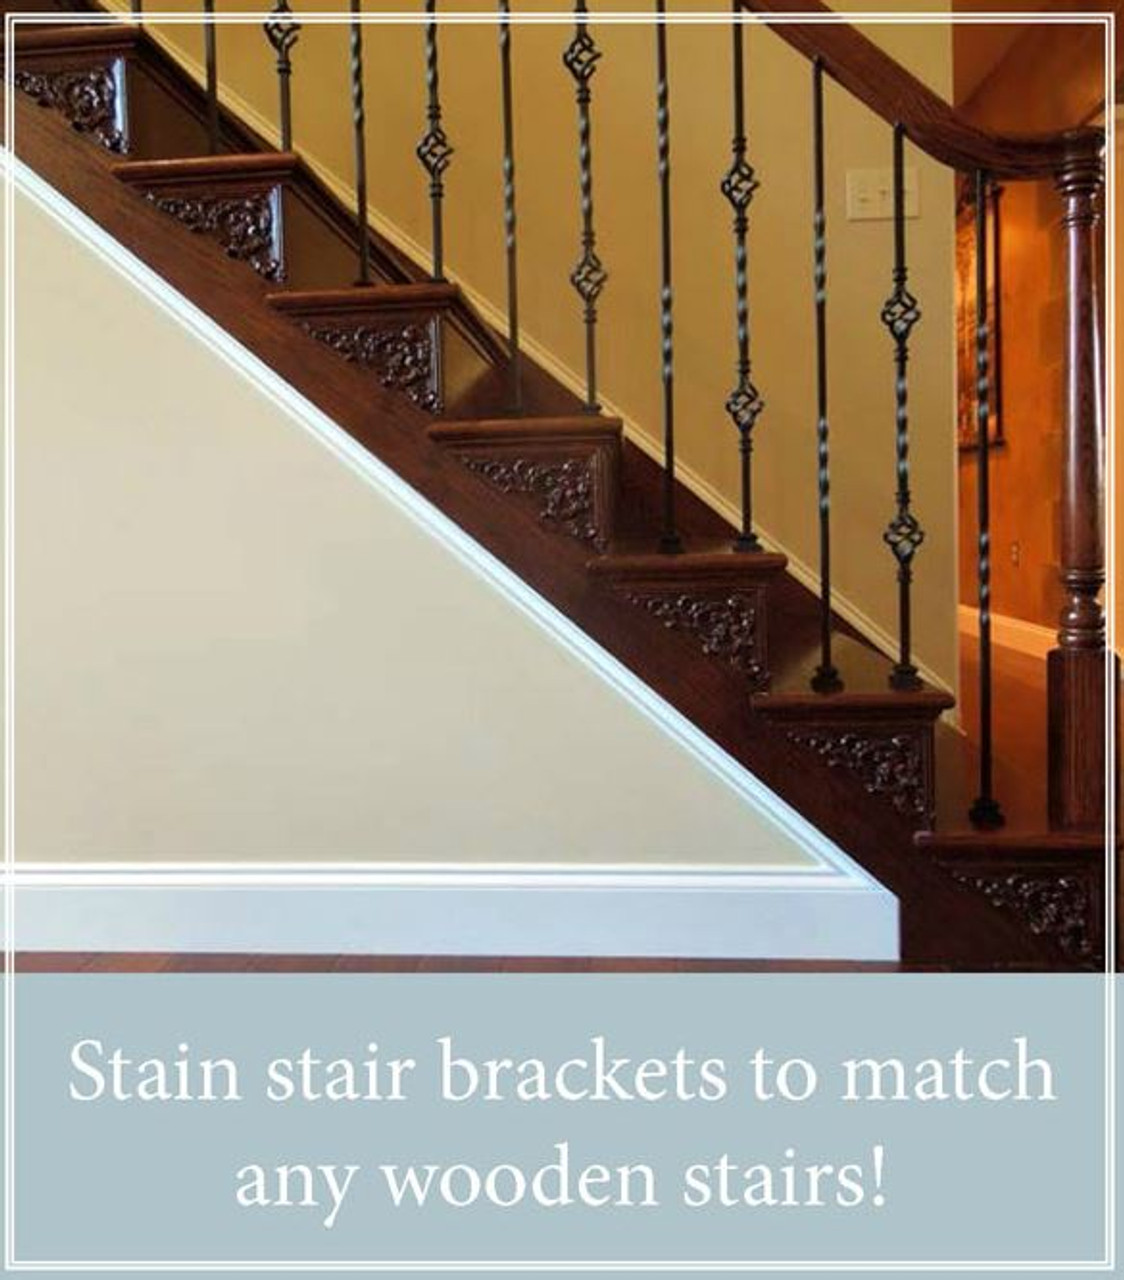 Brackets can be painted or stained to match hardwood woodwork